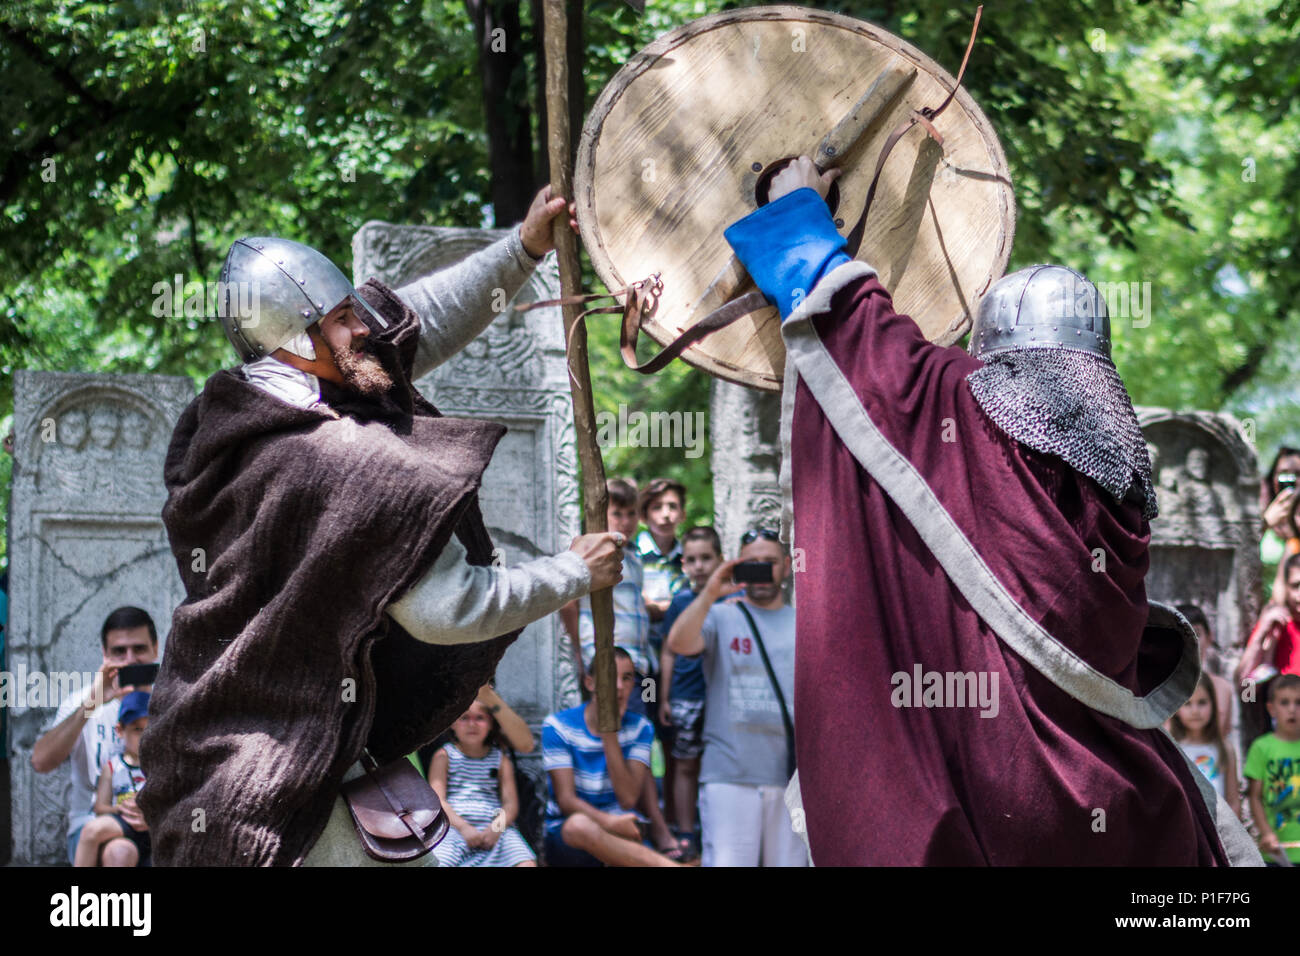 Nis, Serbia - June 10, 2018: Two knights in armor fighting in nature with old weapon. Medieval Festival battle concept Stock Photo